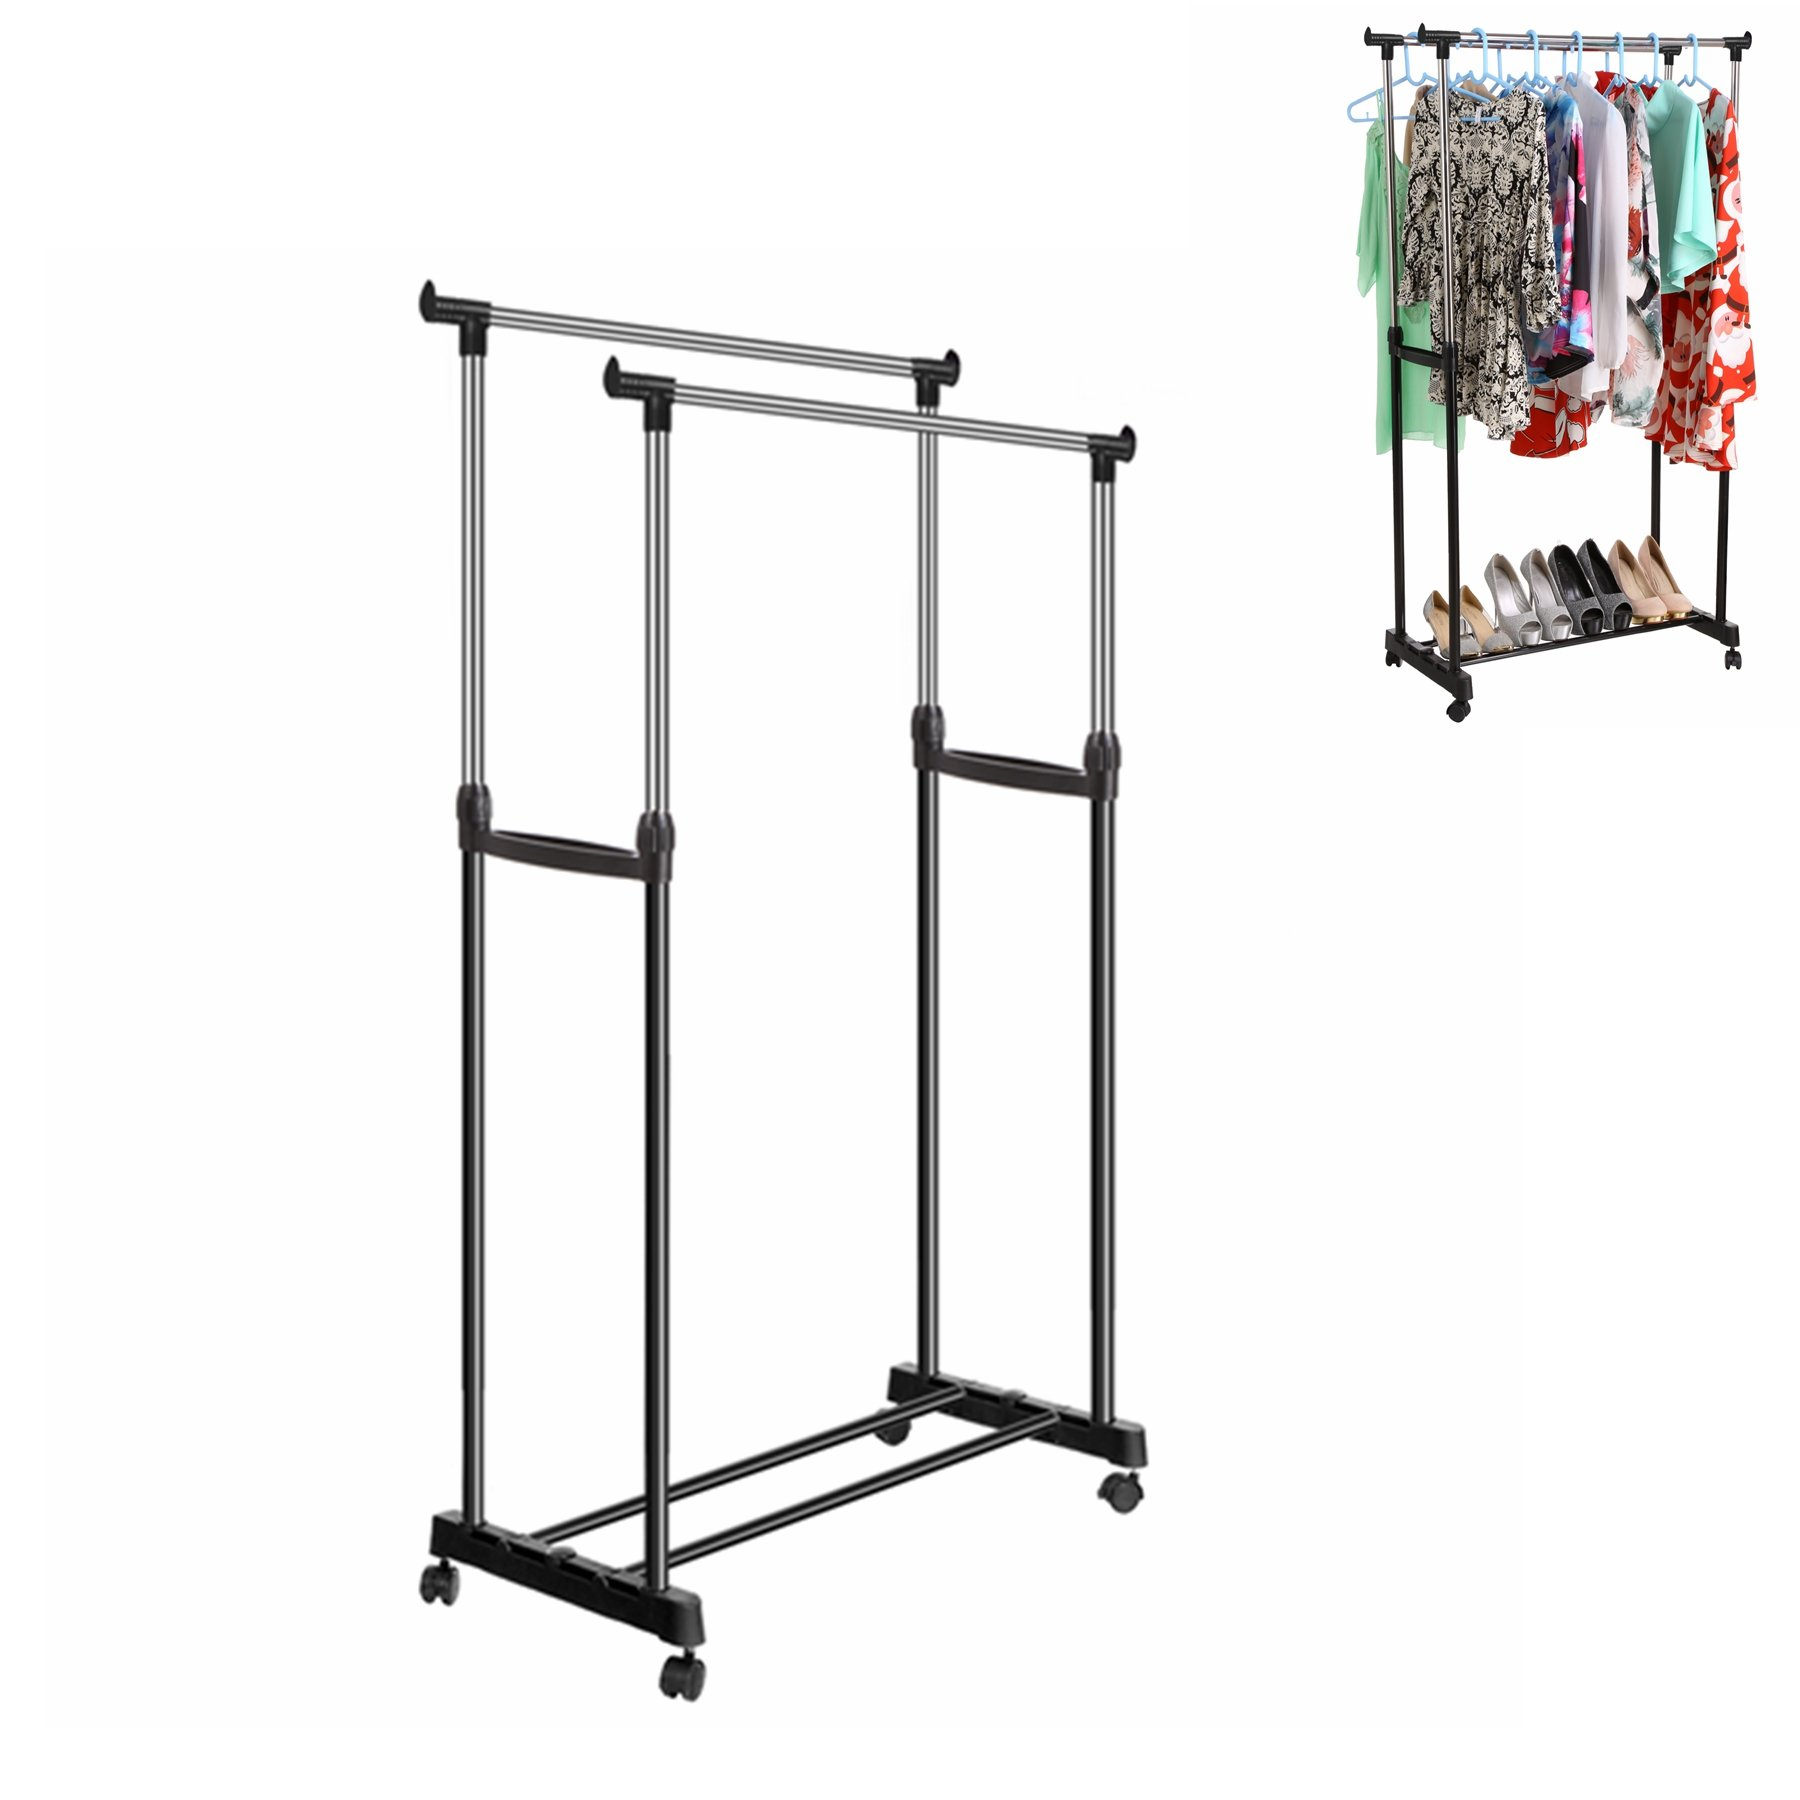 Benlet Stainless Adjustable Double Rod Clothes Hanging Rack and Shoe Rack with Wheel and Brake (US Stock) (Black)